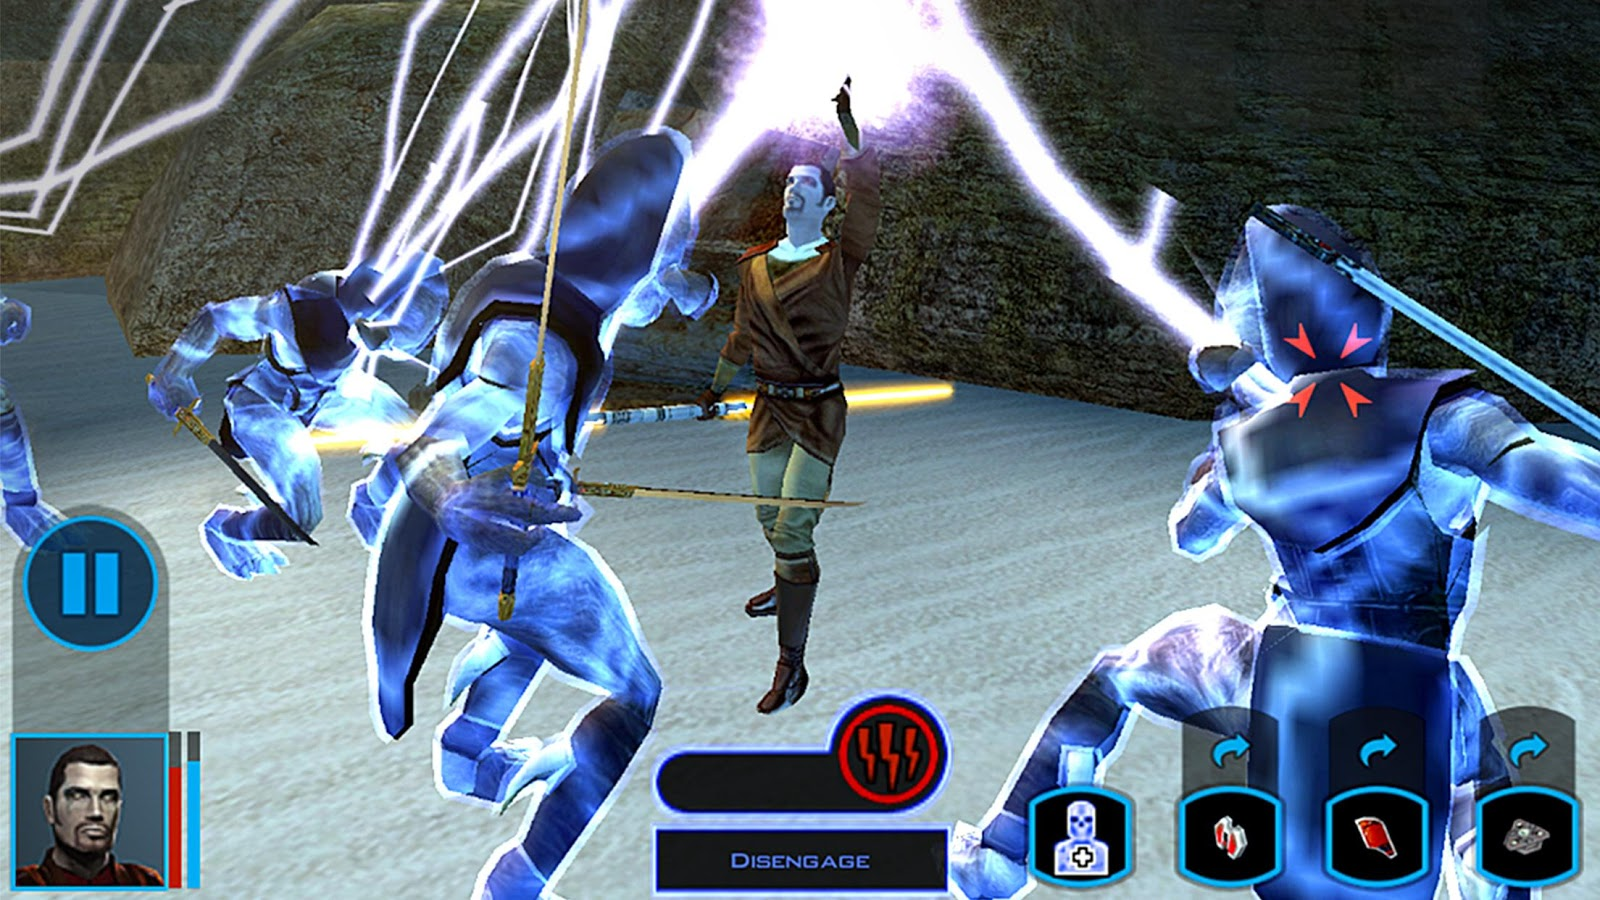 Star Wars: KOTOR Apk Free Download For Android Latest v1.0.6